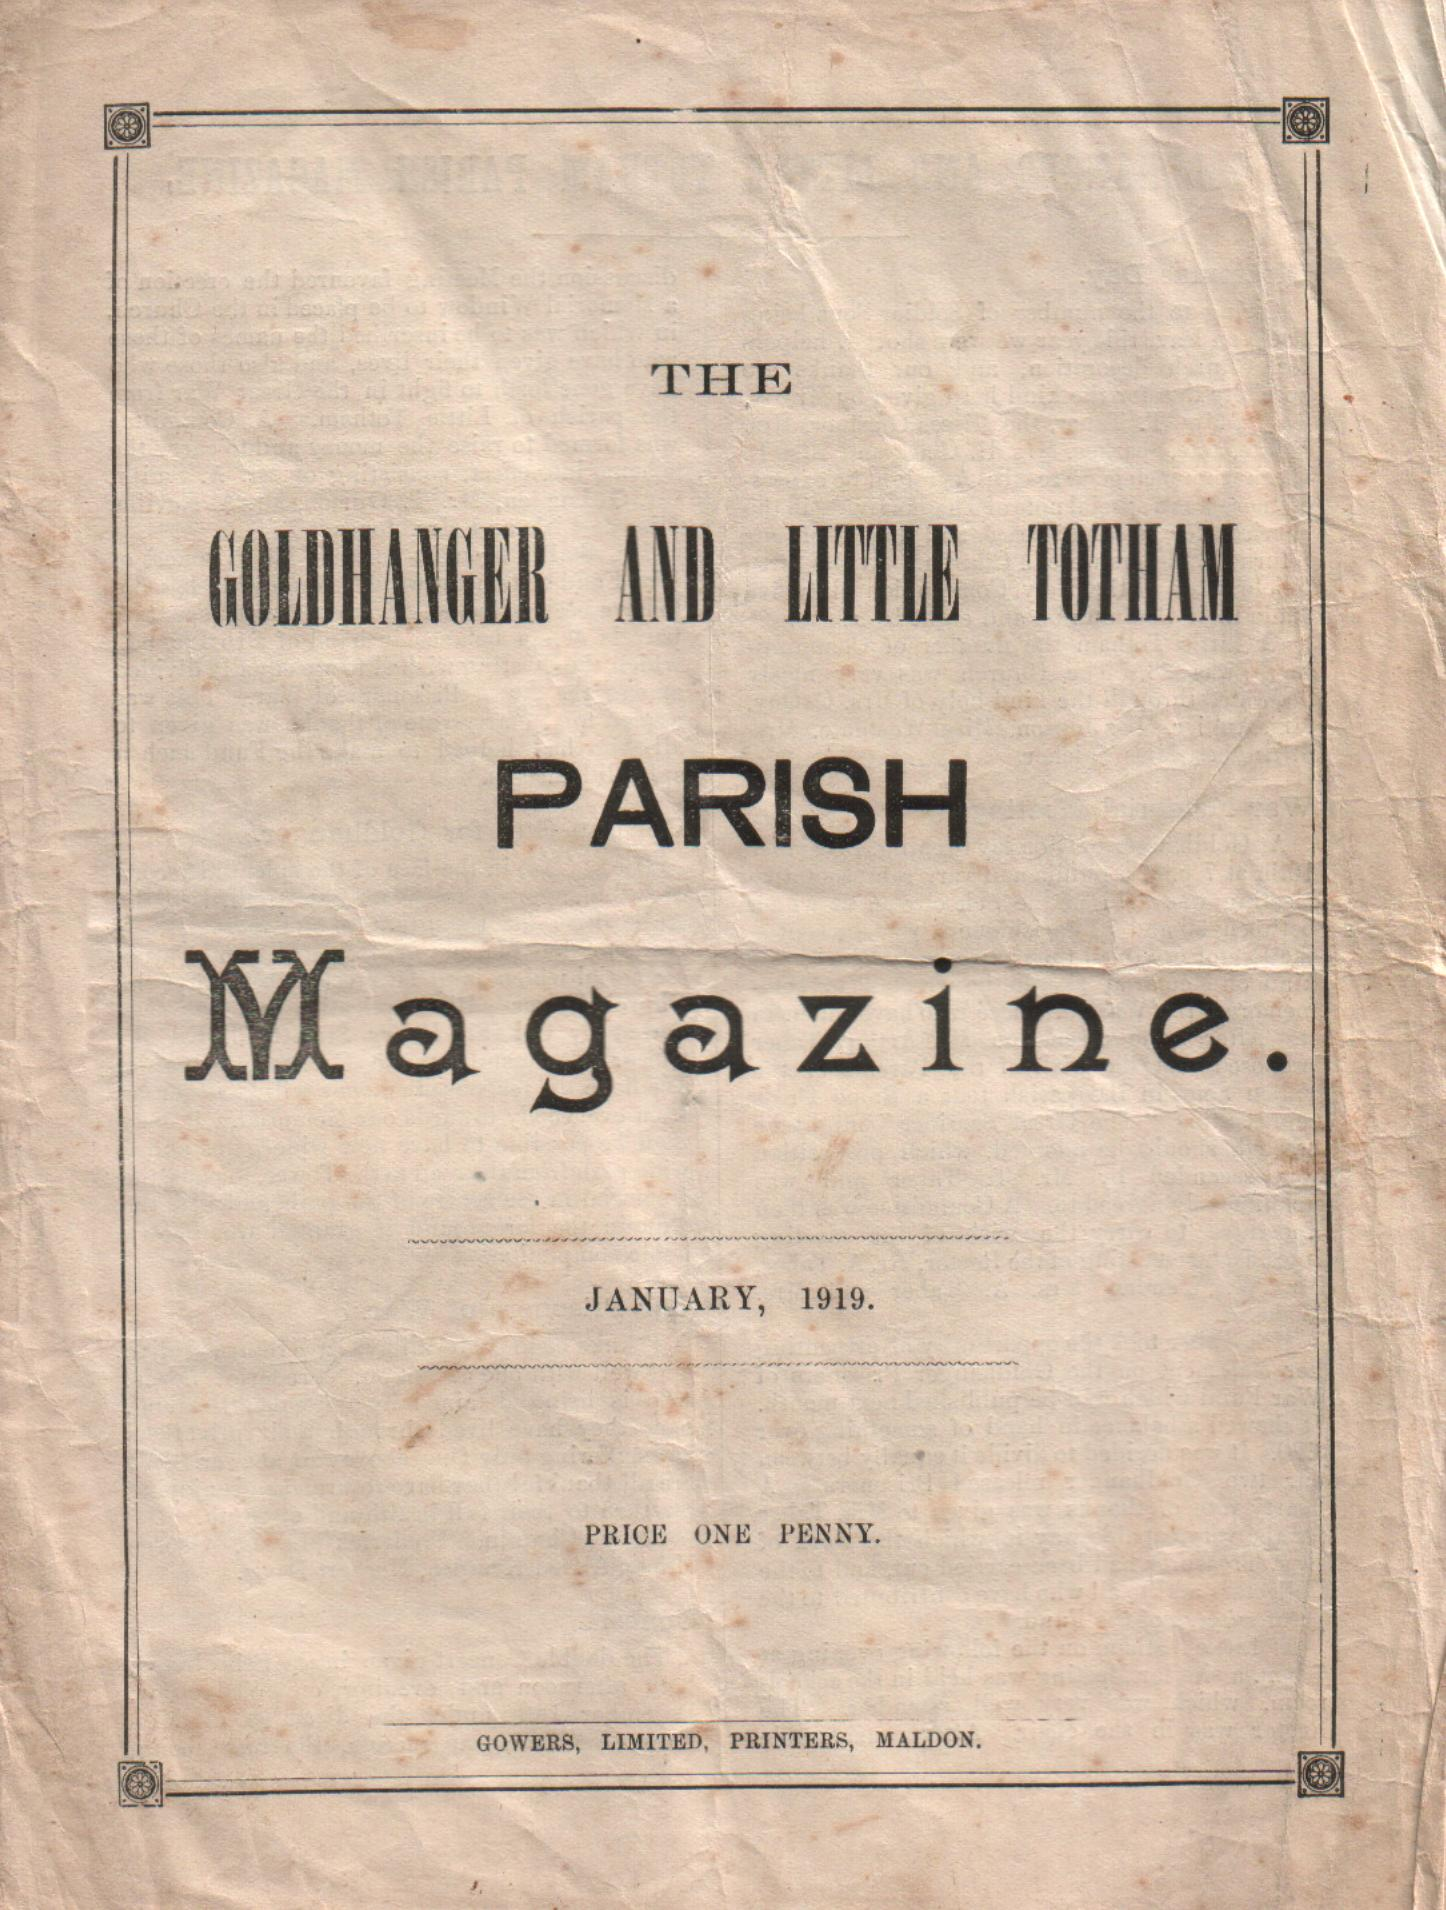 photo of Goldhanger Parish Magazine from 1919 costing one penny